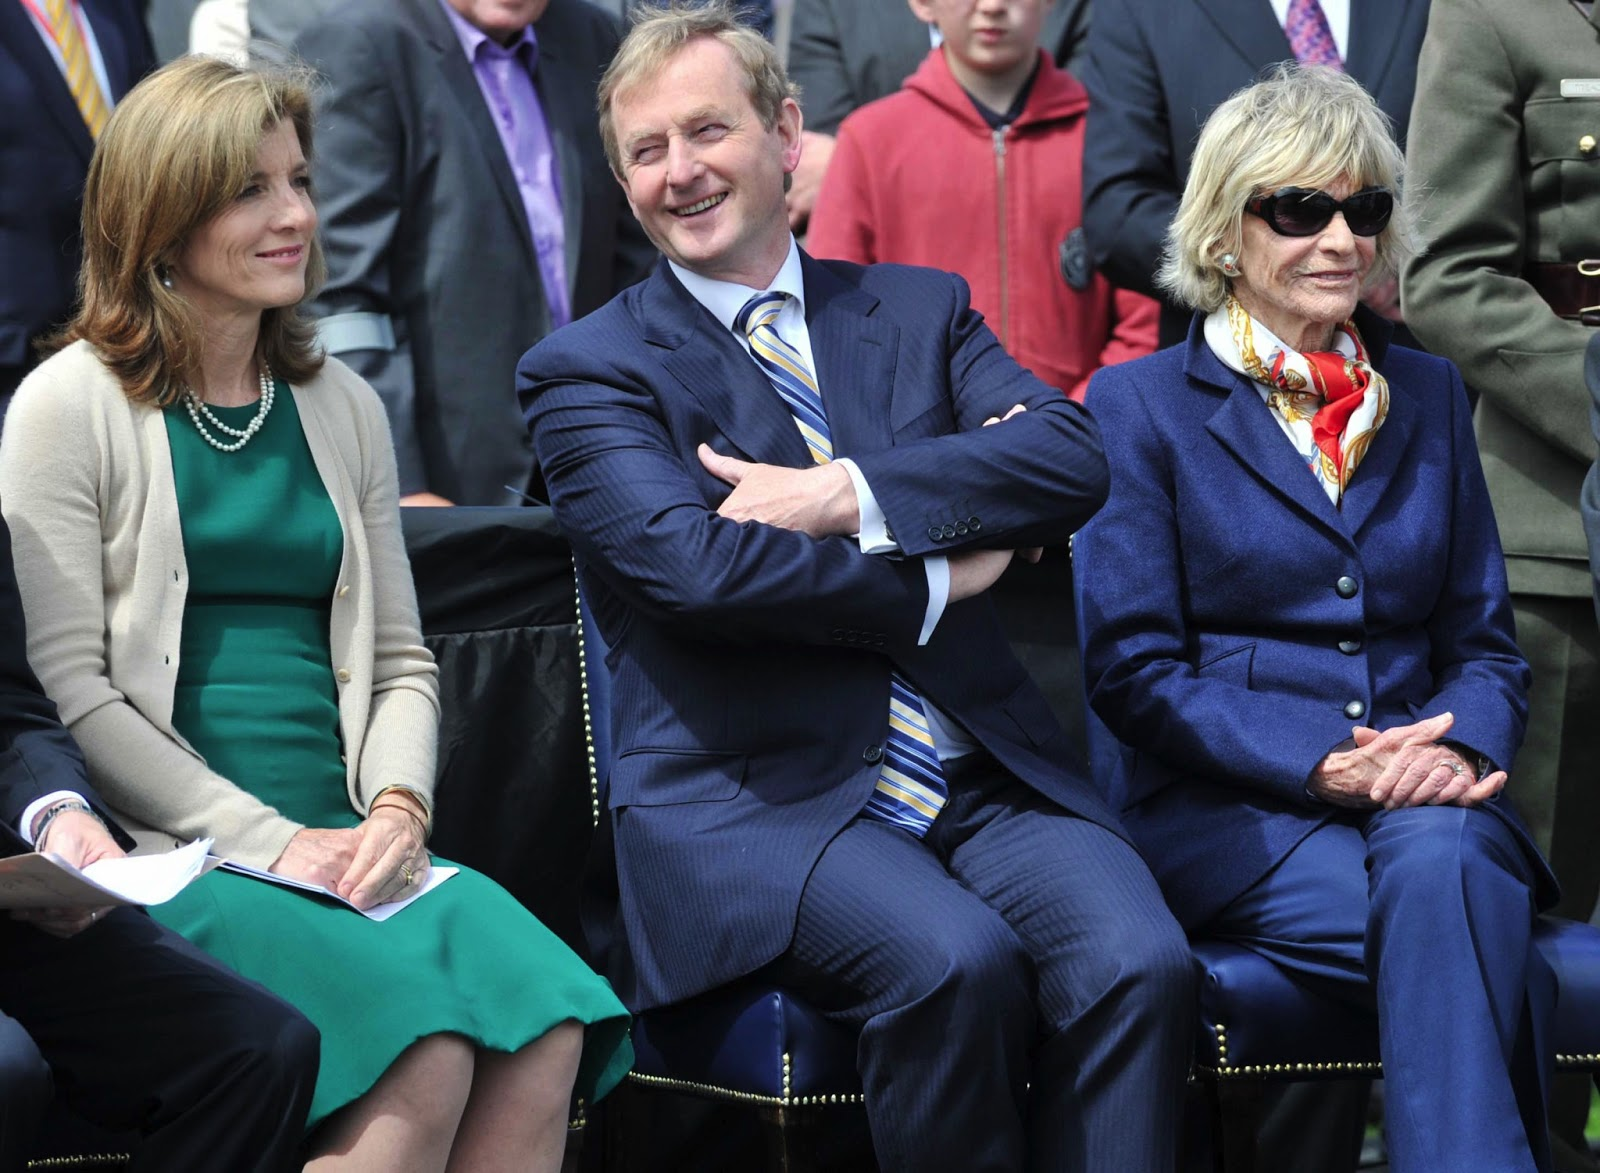 carrying on a family tradition going back to 1814 the historical caroline kennedy taoiseach prime minister enda kenny and jean kennedy smith at the